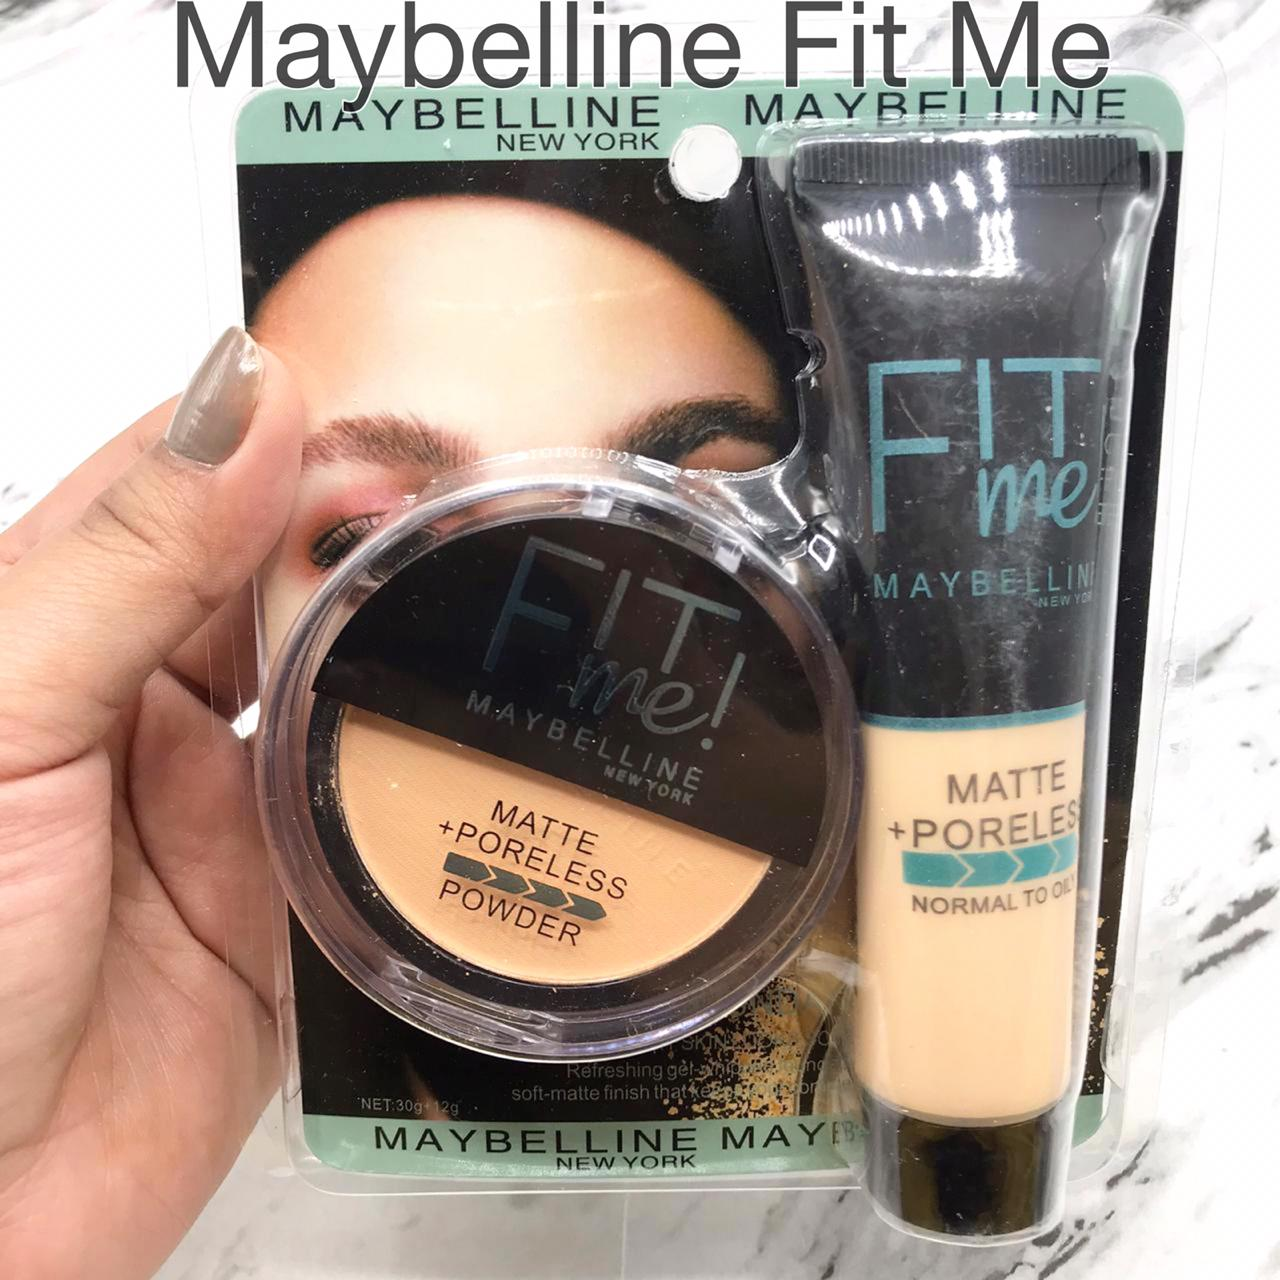 2 in 1 Face Powder And Foundation set